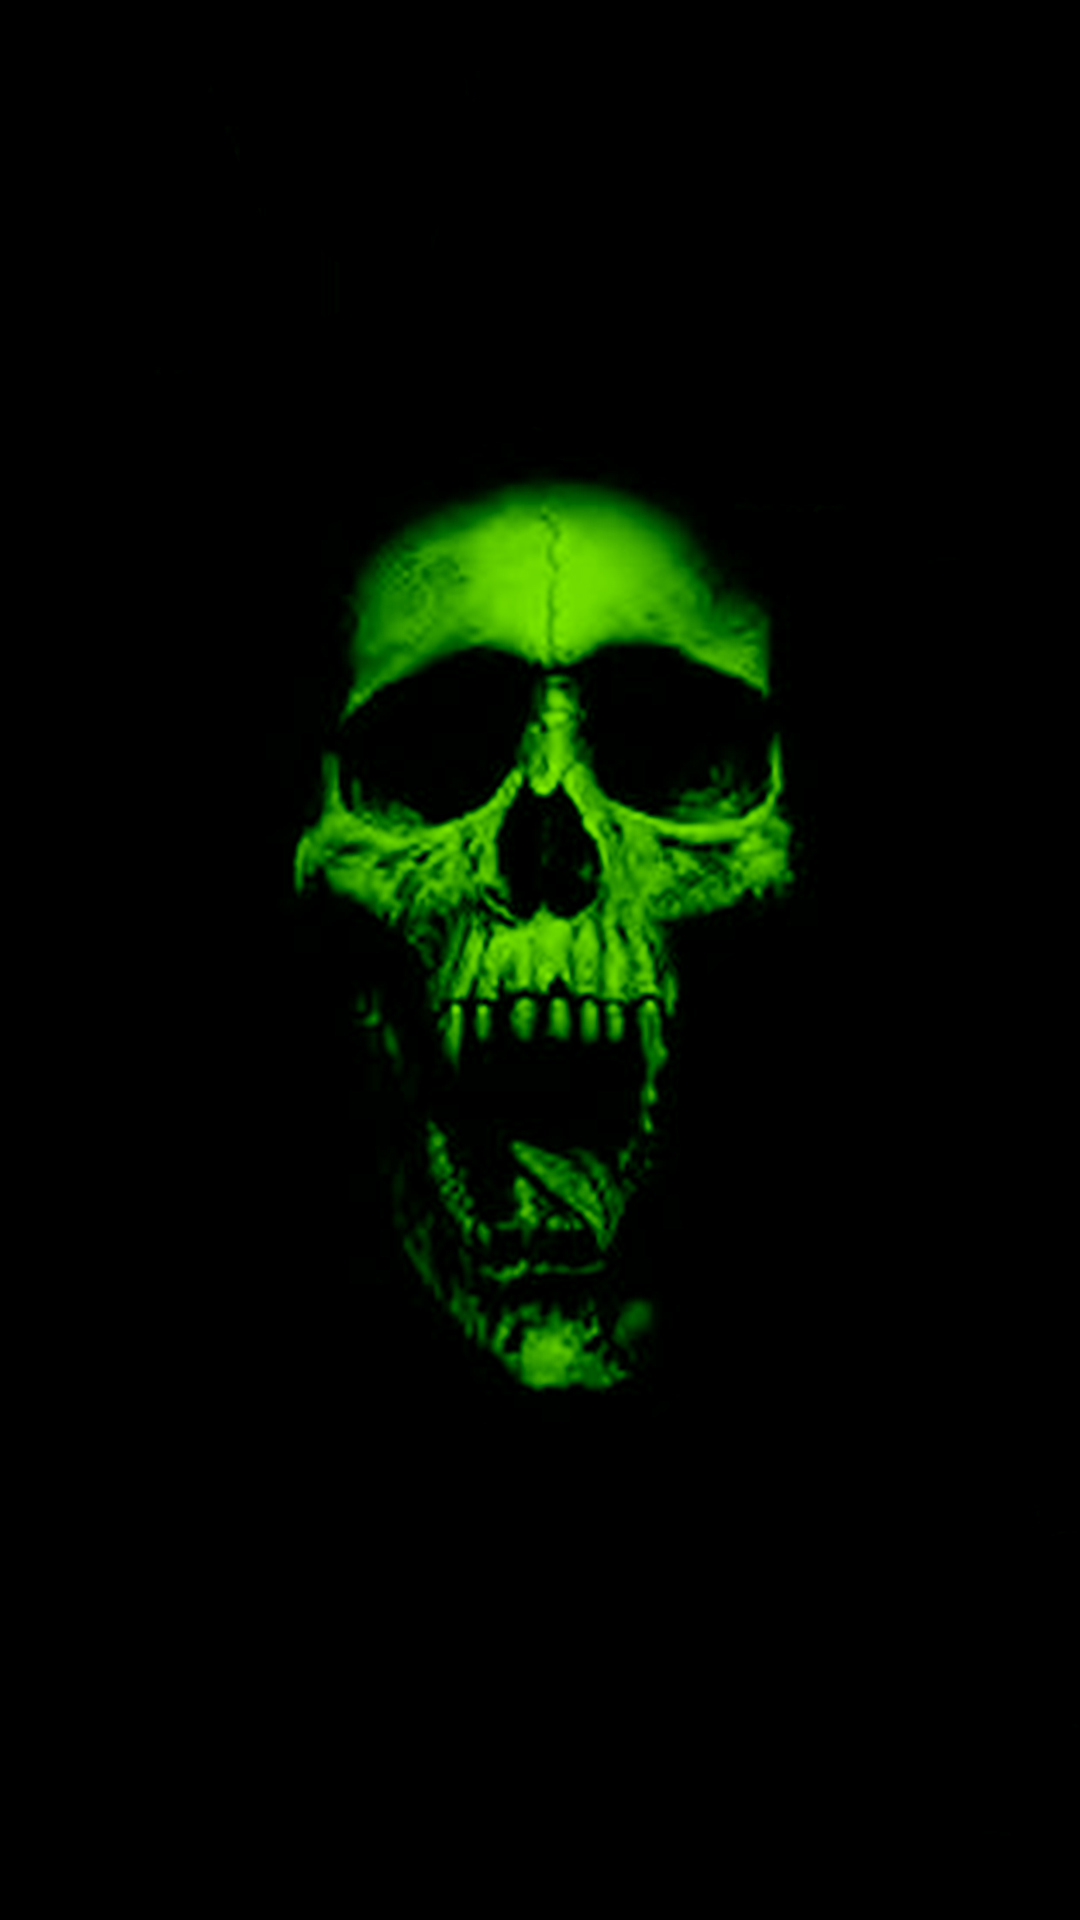 Green Skull HD Wallpaper For Your iPhone 6 1080x1920